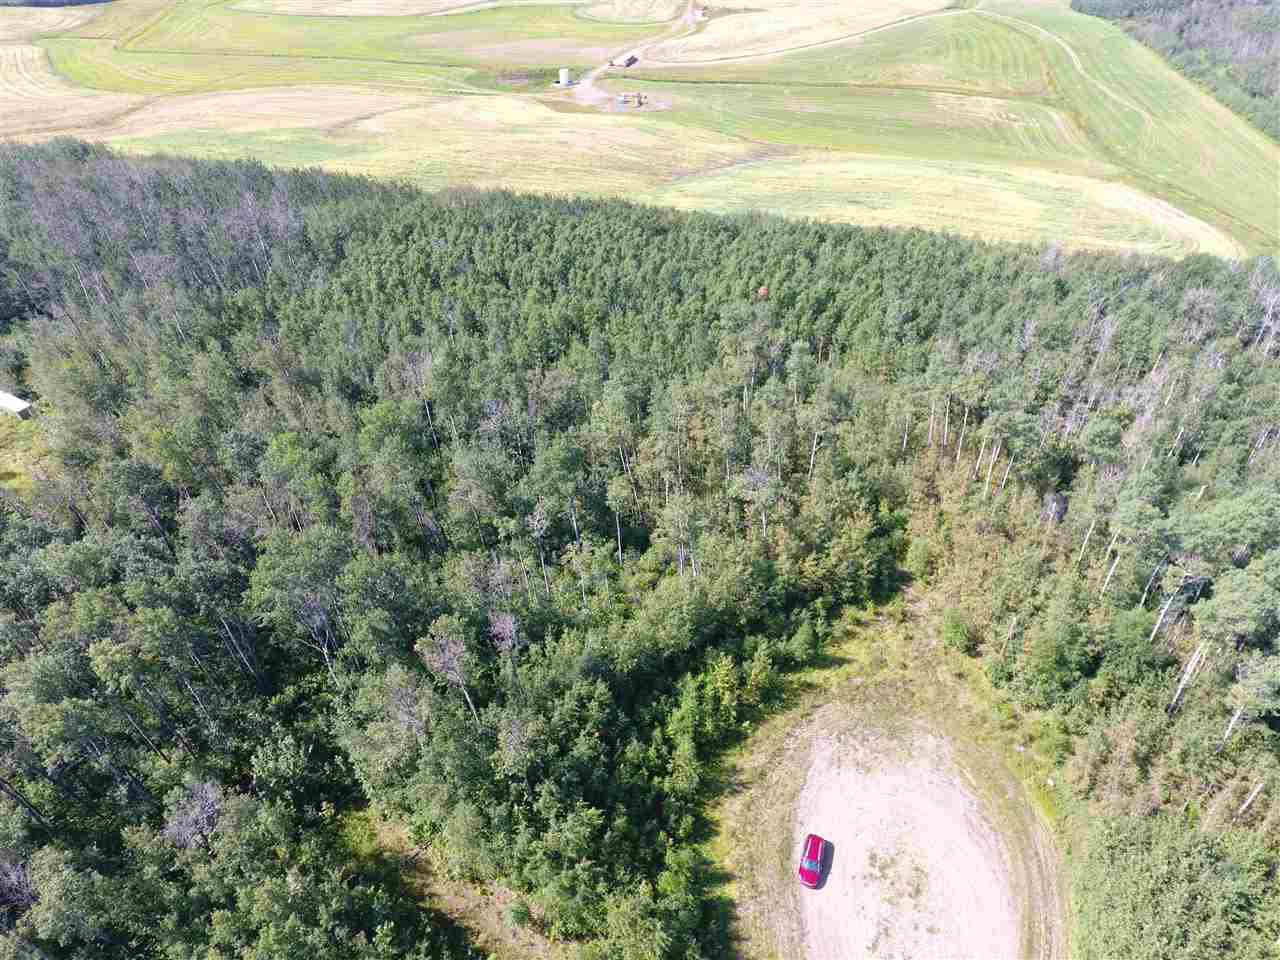 Photo 9: Photos: 22 Morgan Way: Rural Lac Ste. Anne County Rural Land/Vacant Lot for sale : MLS®# E4209833